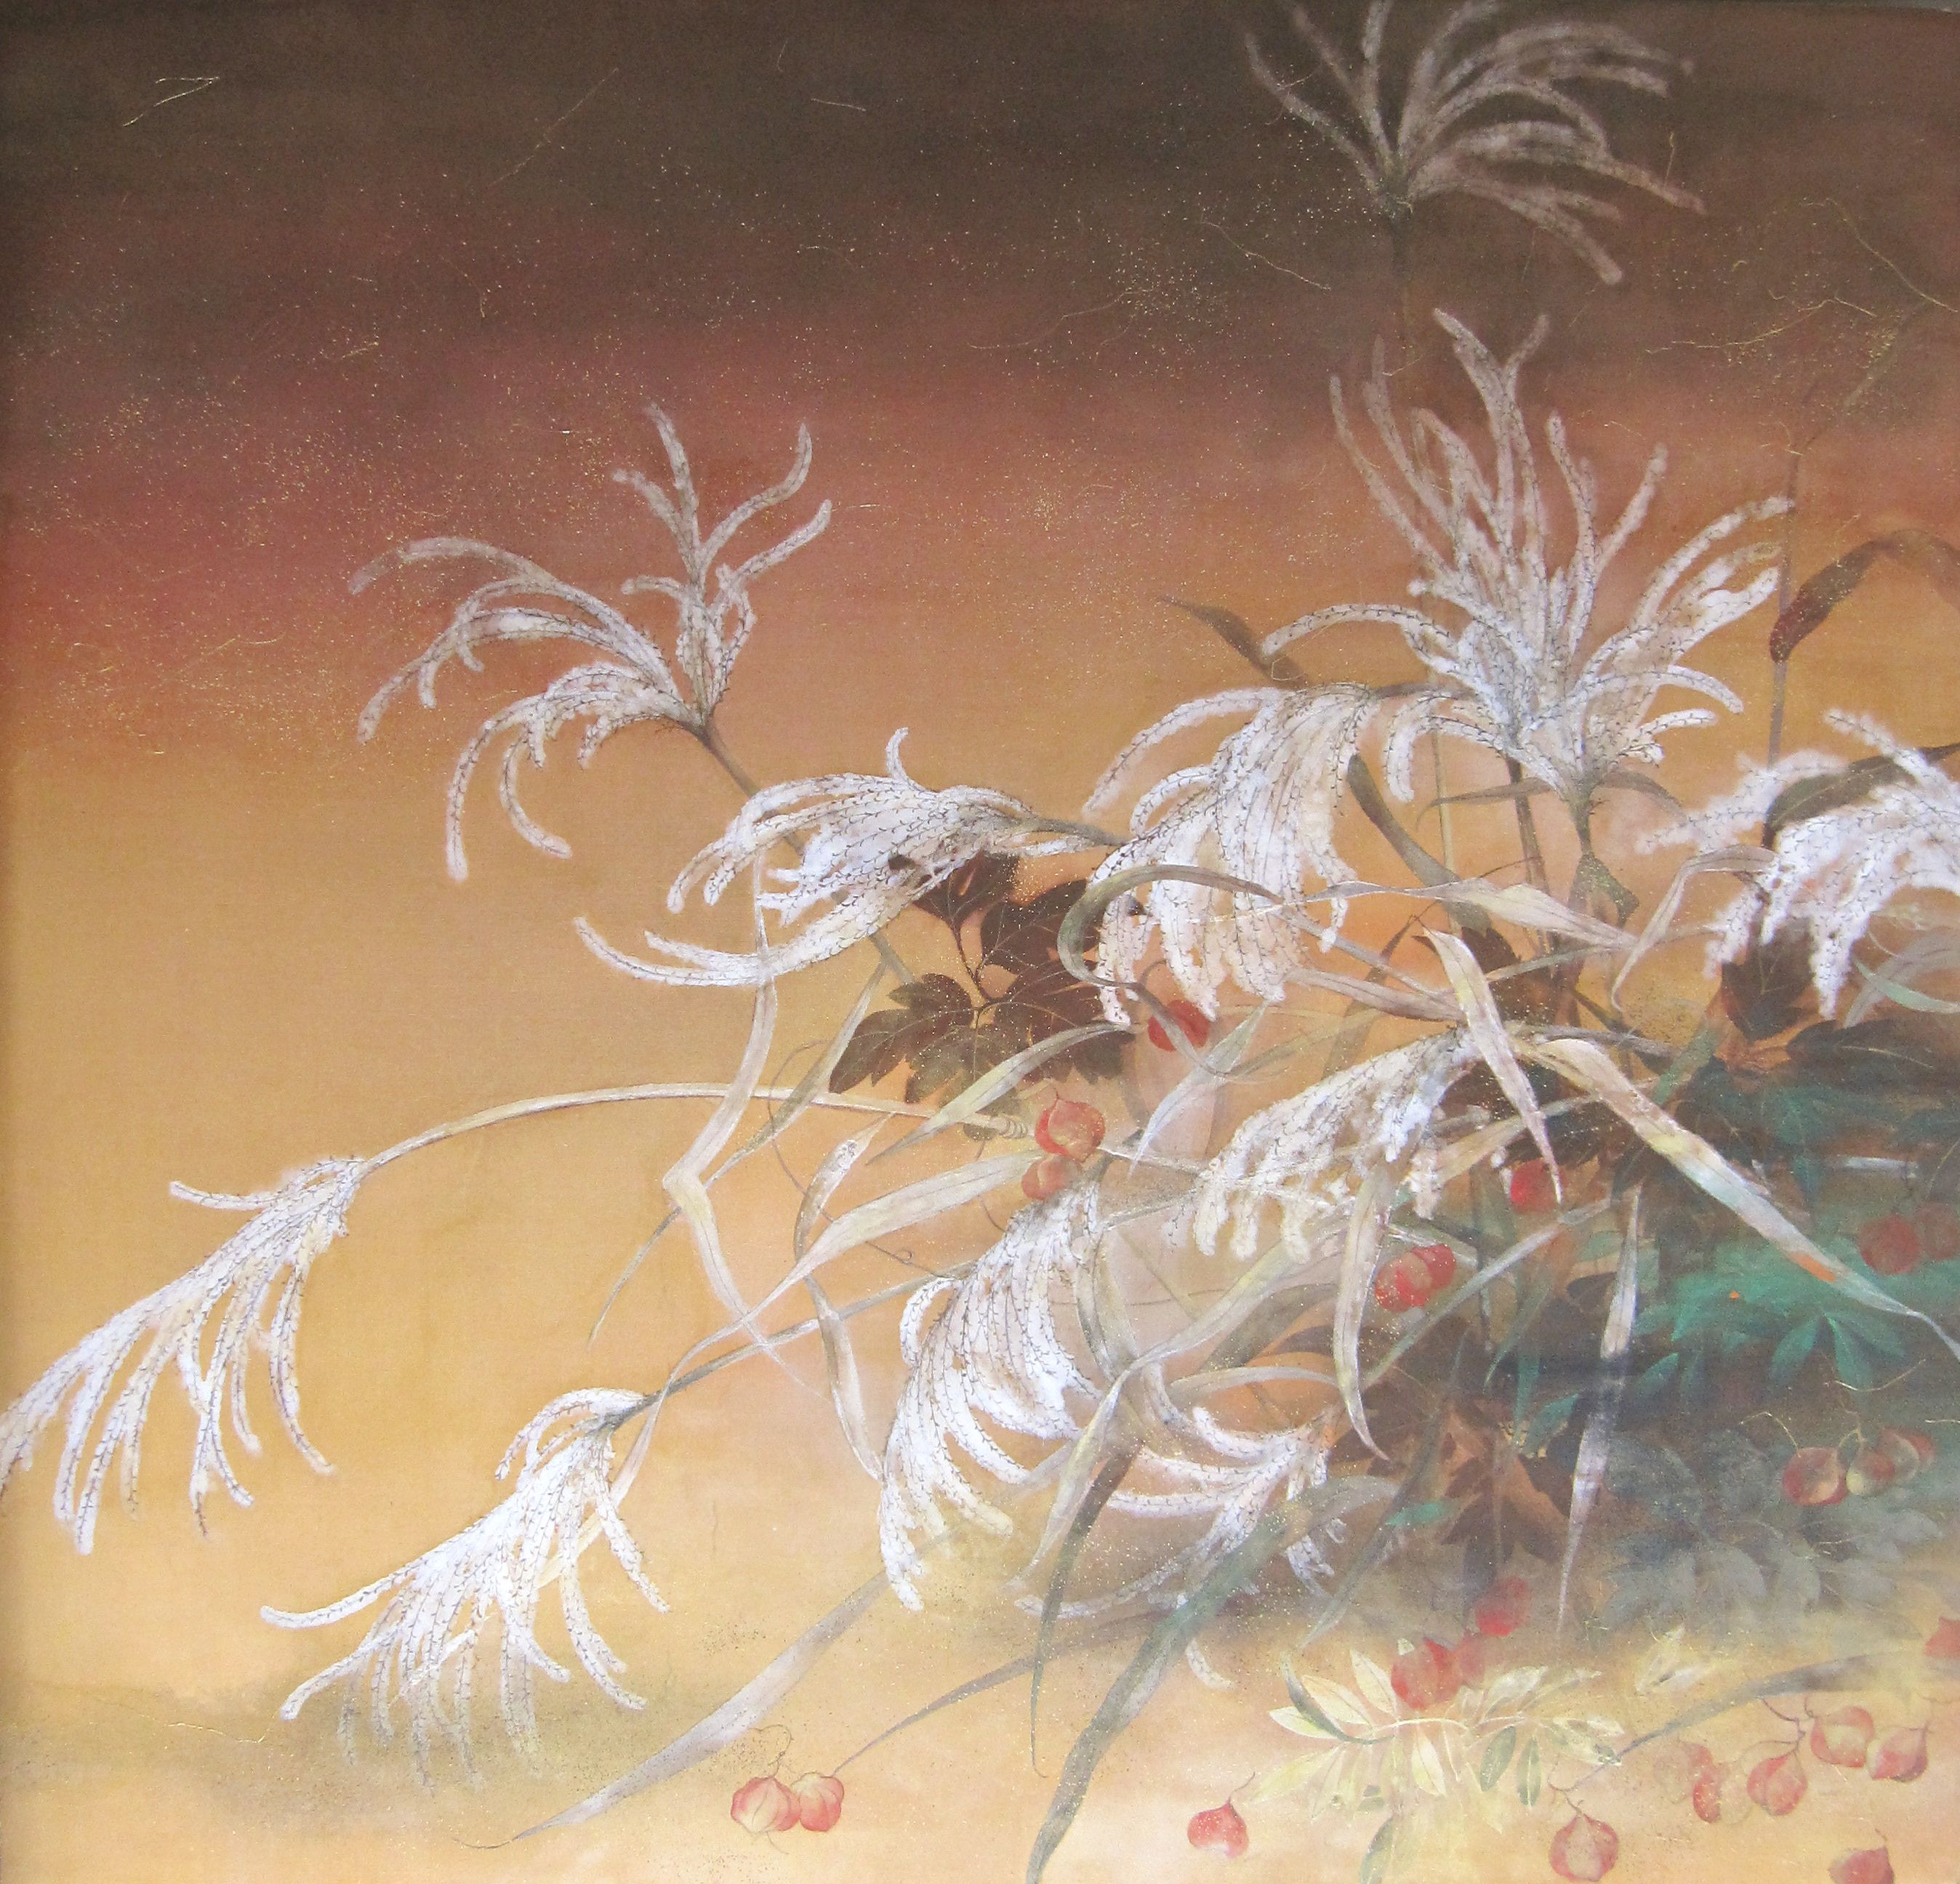 Brise d'automne,Chen Yiching,Painting